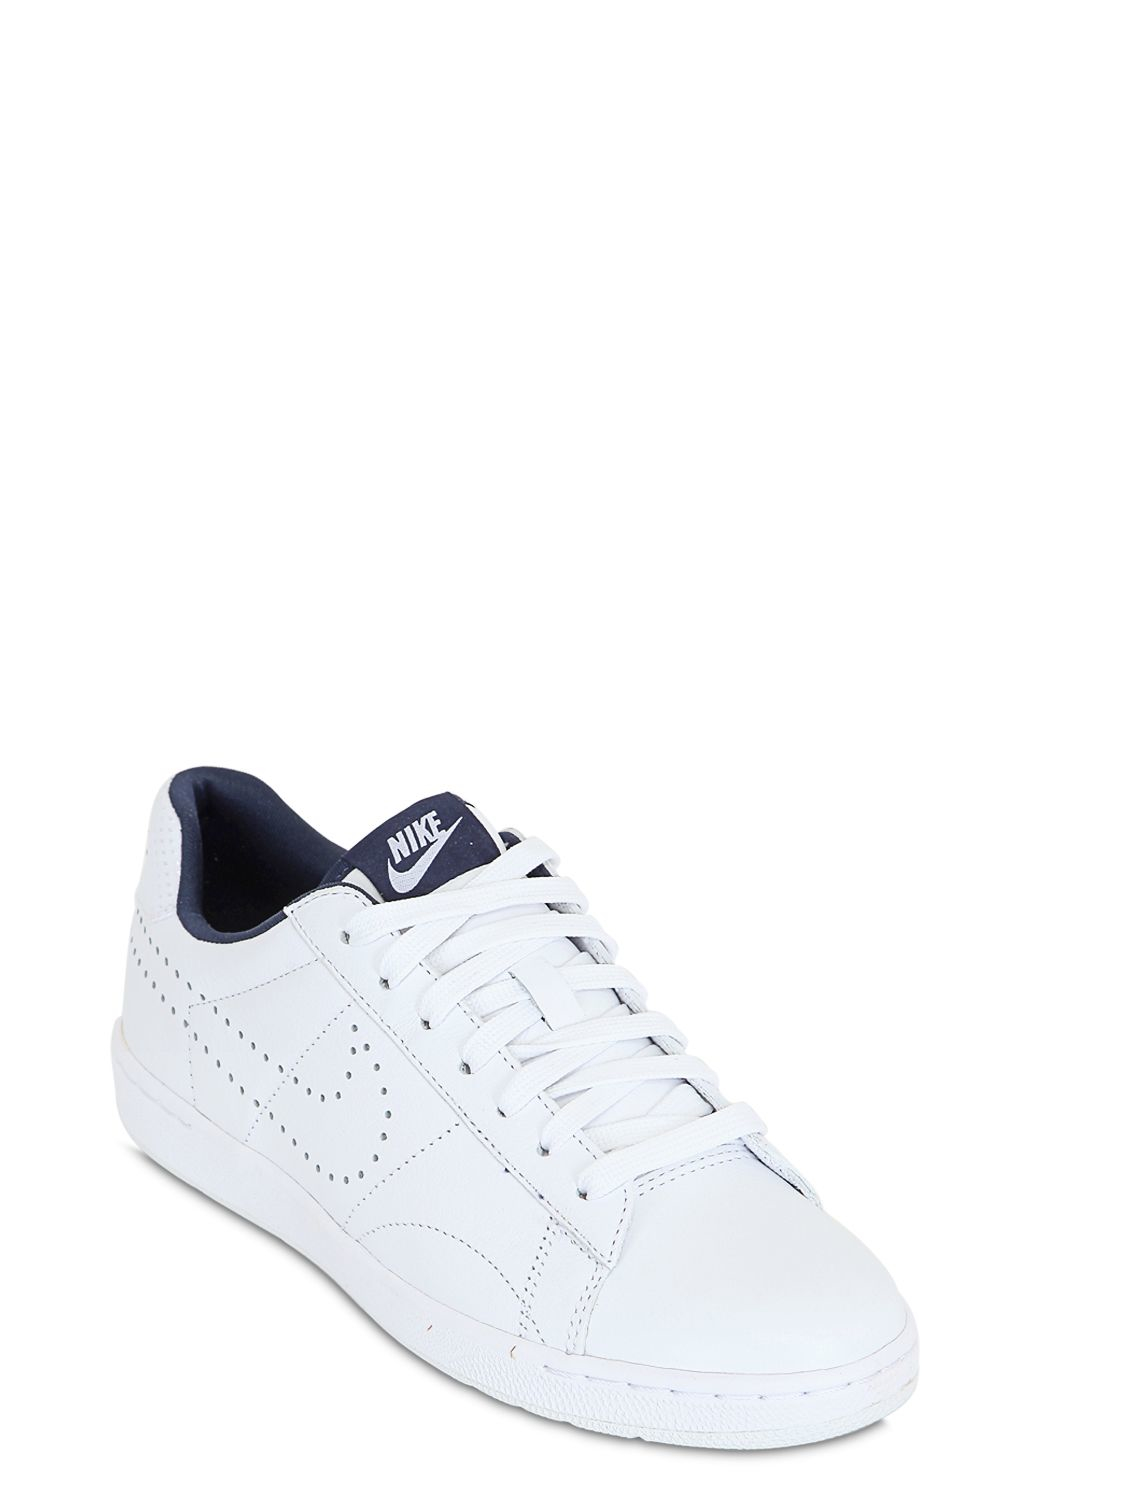 competitive price a2d3c 88796 Nike Tennis Classic Ultra Fo Leather Sneakers in White for Men - Lyst